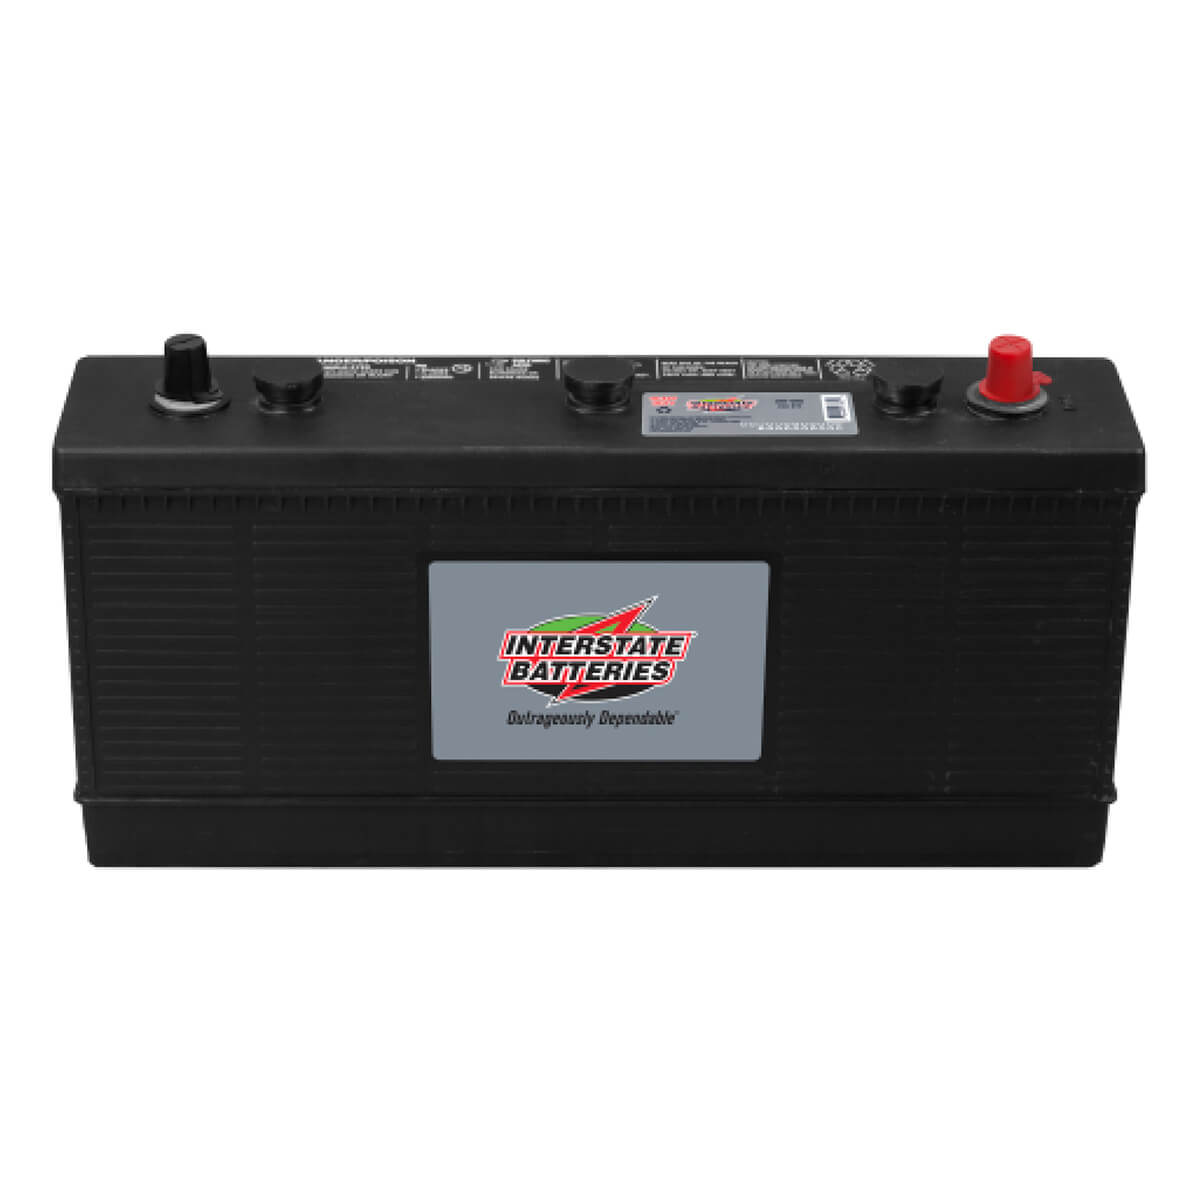 Interstate Commercial 6 Volt Battery - 3EH-VHD